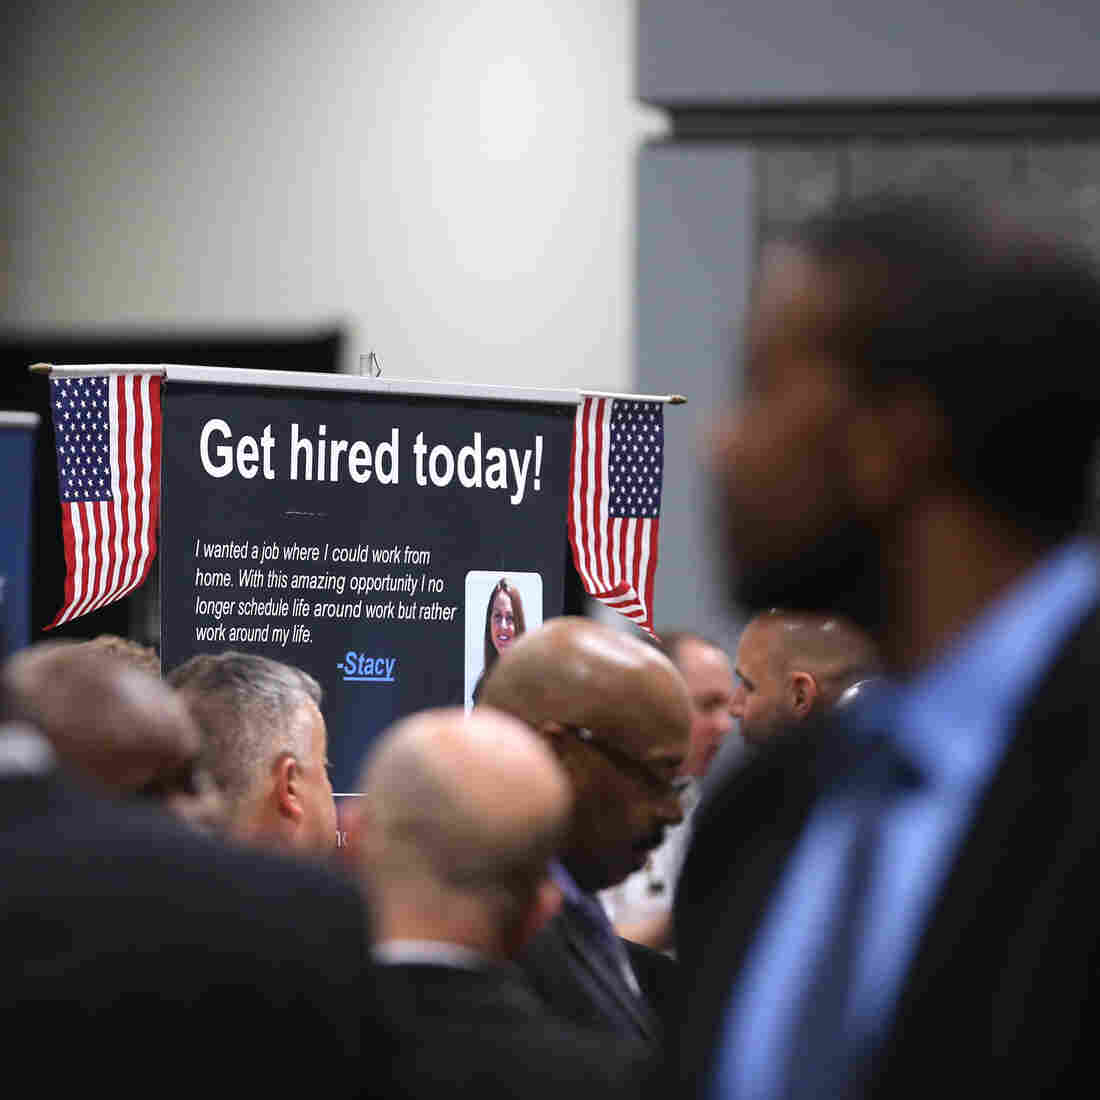 Jobless Rate Ticks Up, But Job Growth Is Better Than Expected